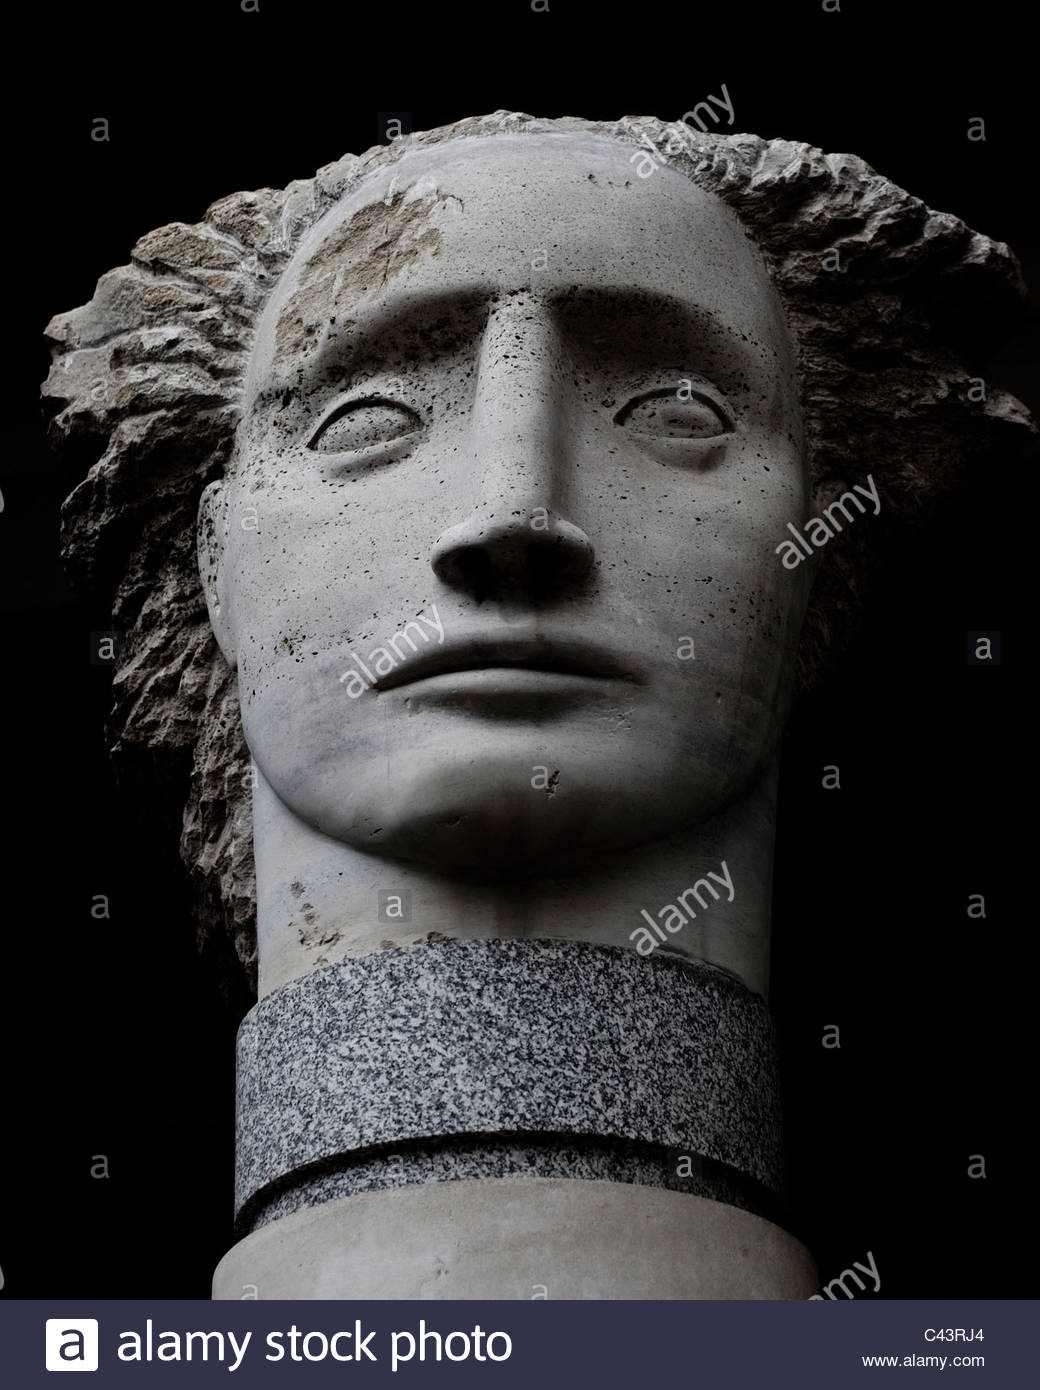 Angel Head Sculpture by Emily Young - Stock Image